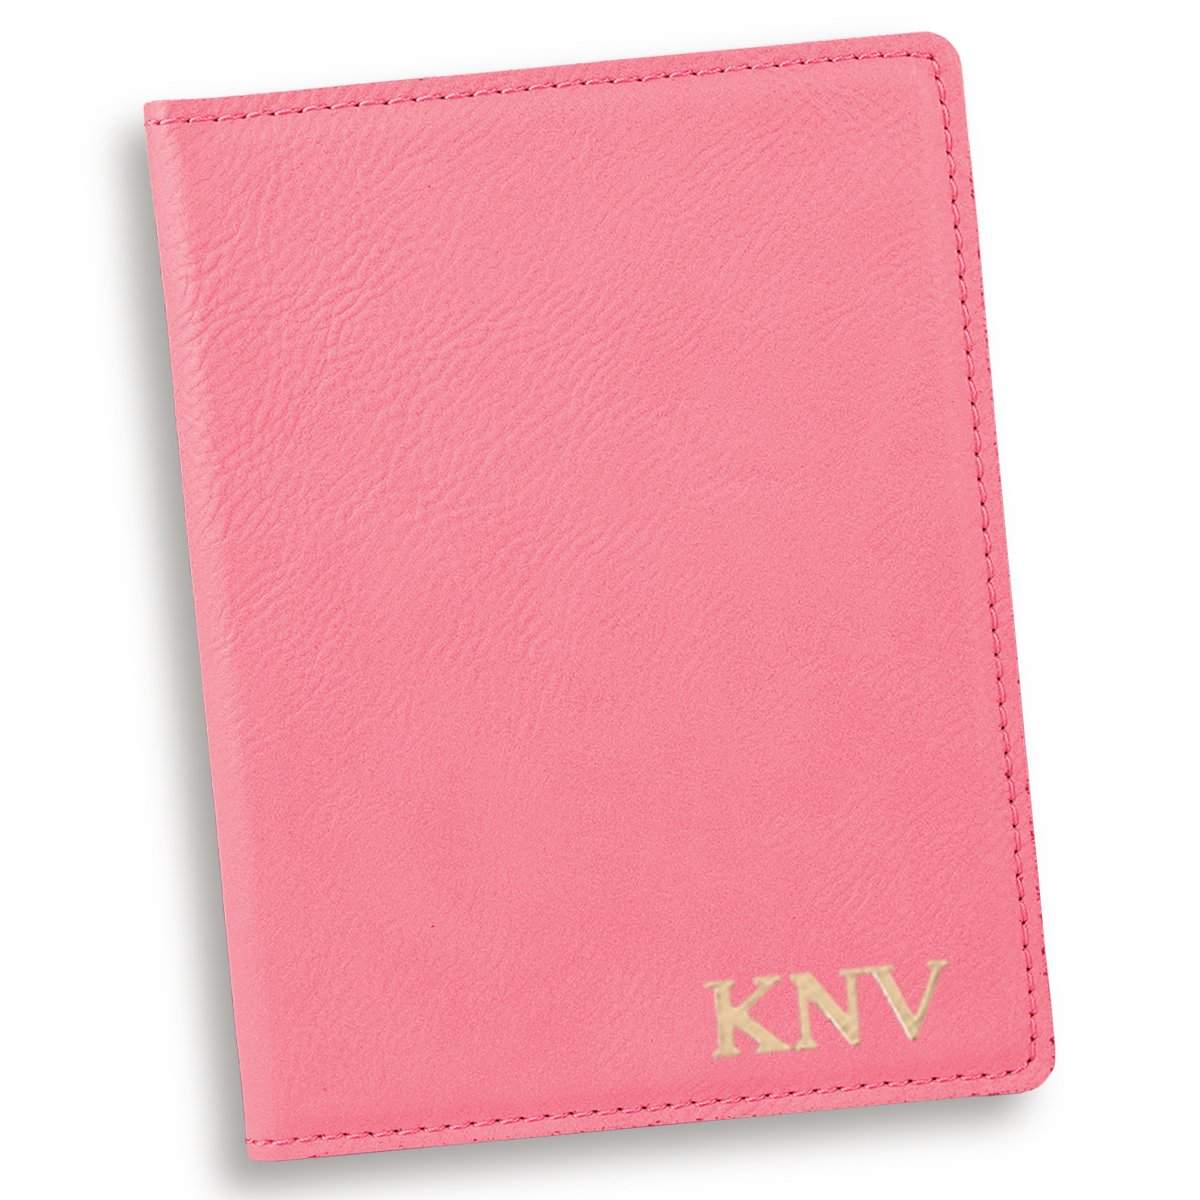 Personalized Pink Passport Holder college graduation ideas present for her